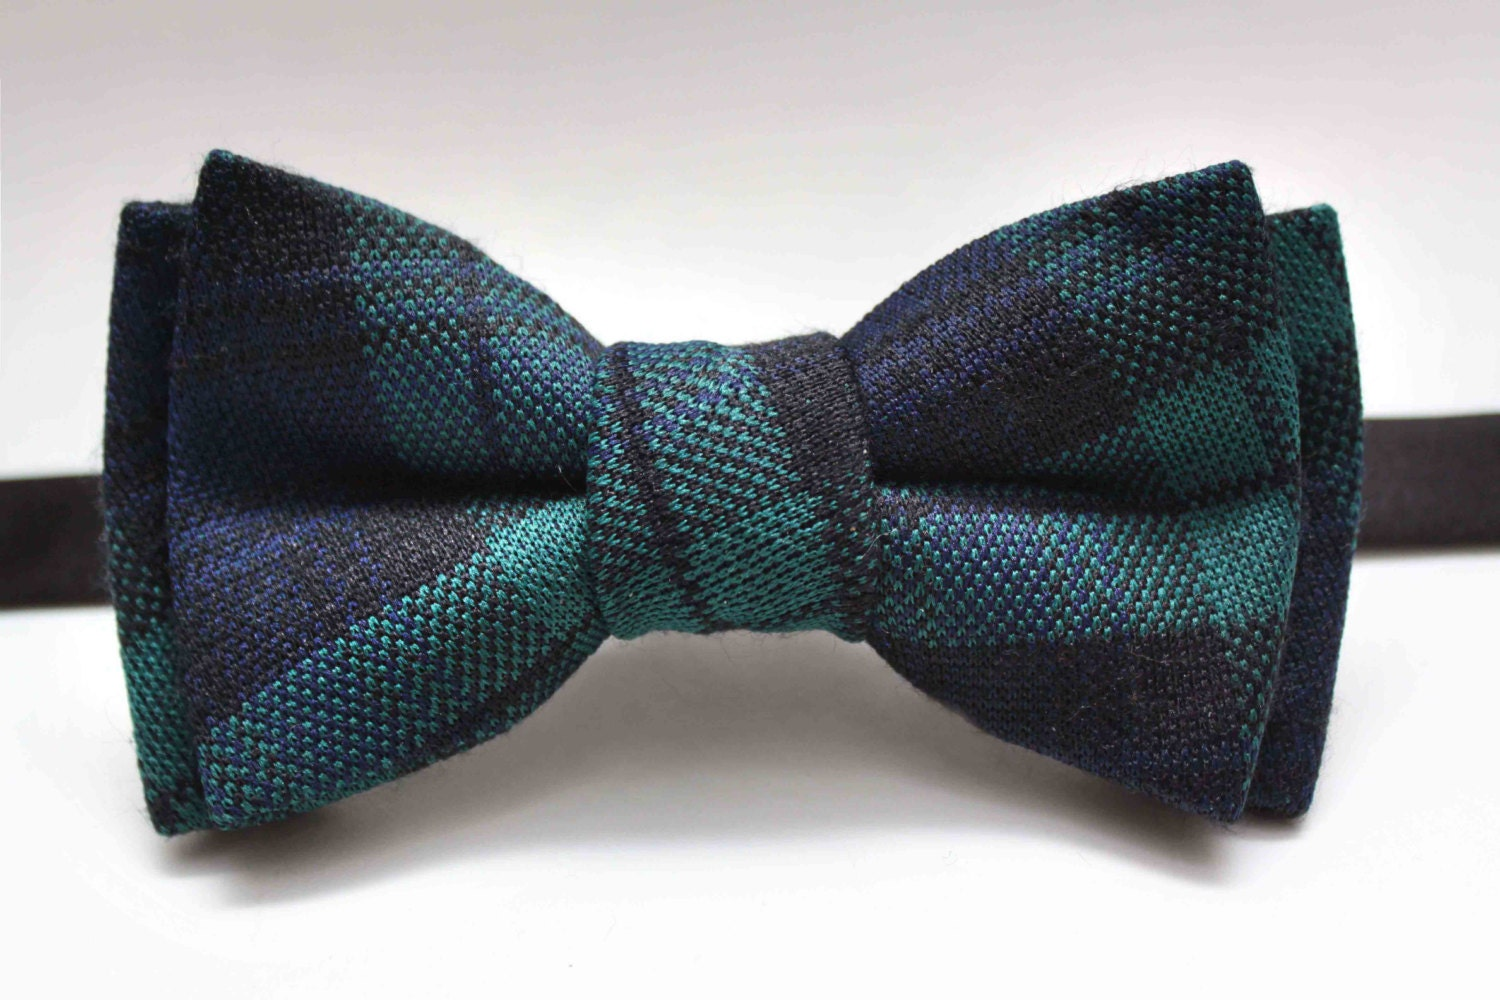 You searched for: blue green bow tie! Etsy is the home to thousands of handmade, vintage, and one-of-a-kind products and gifts related to your search. No matter what you're looking for or where you are in the world, our global marketplace of sellers can help you find unique and affordable options. Let's get started!